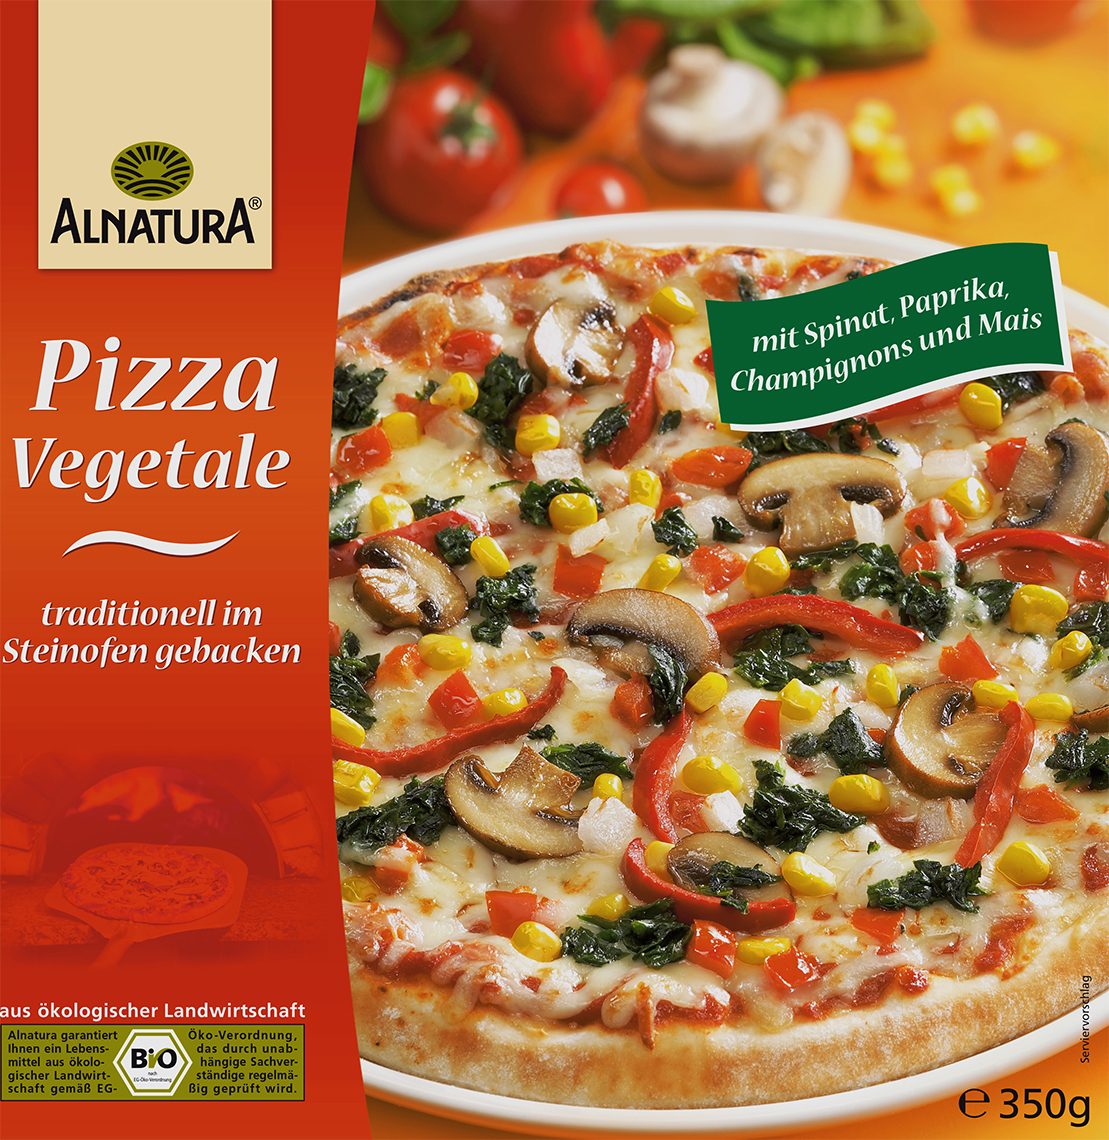 alnatura-pizza-vegetale-packung-foodstyling-martin-gruenewald